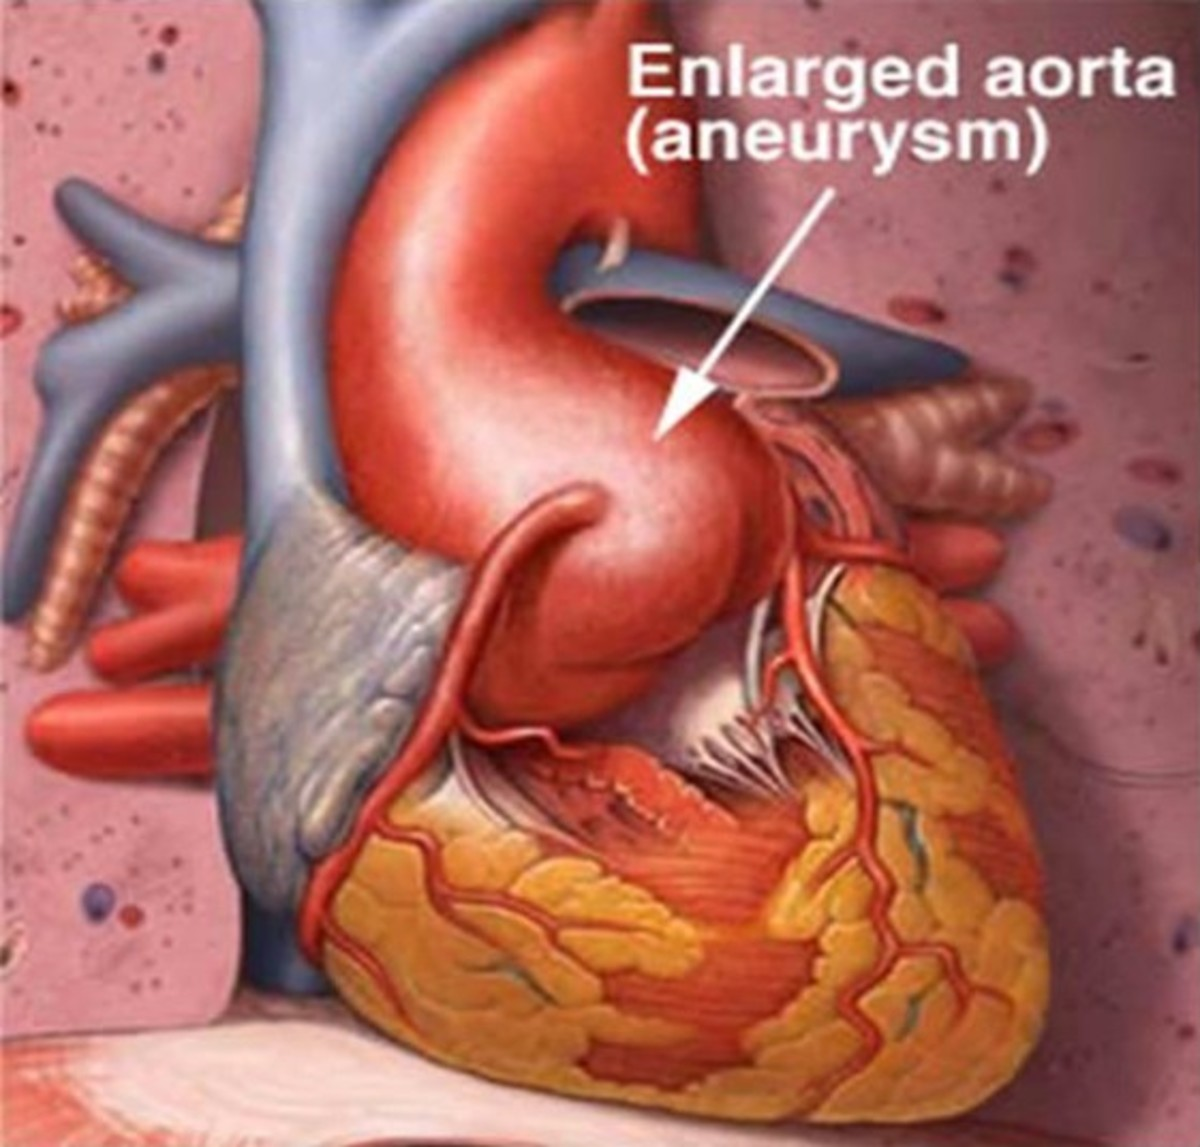 Enlarged Aorta - Symptoms, Treatment, Surgery, Pictures